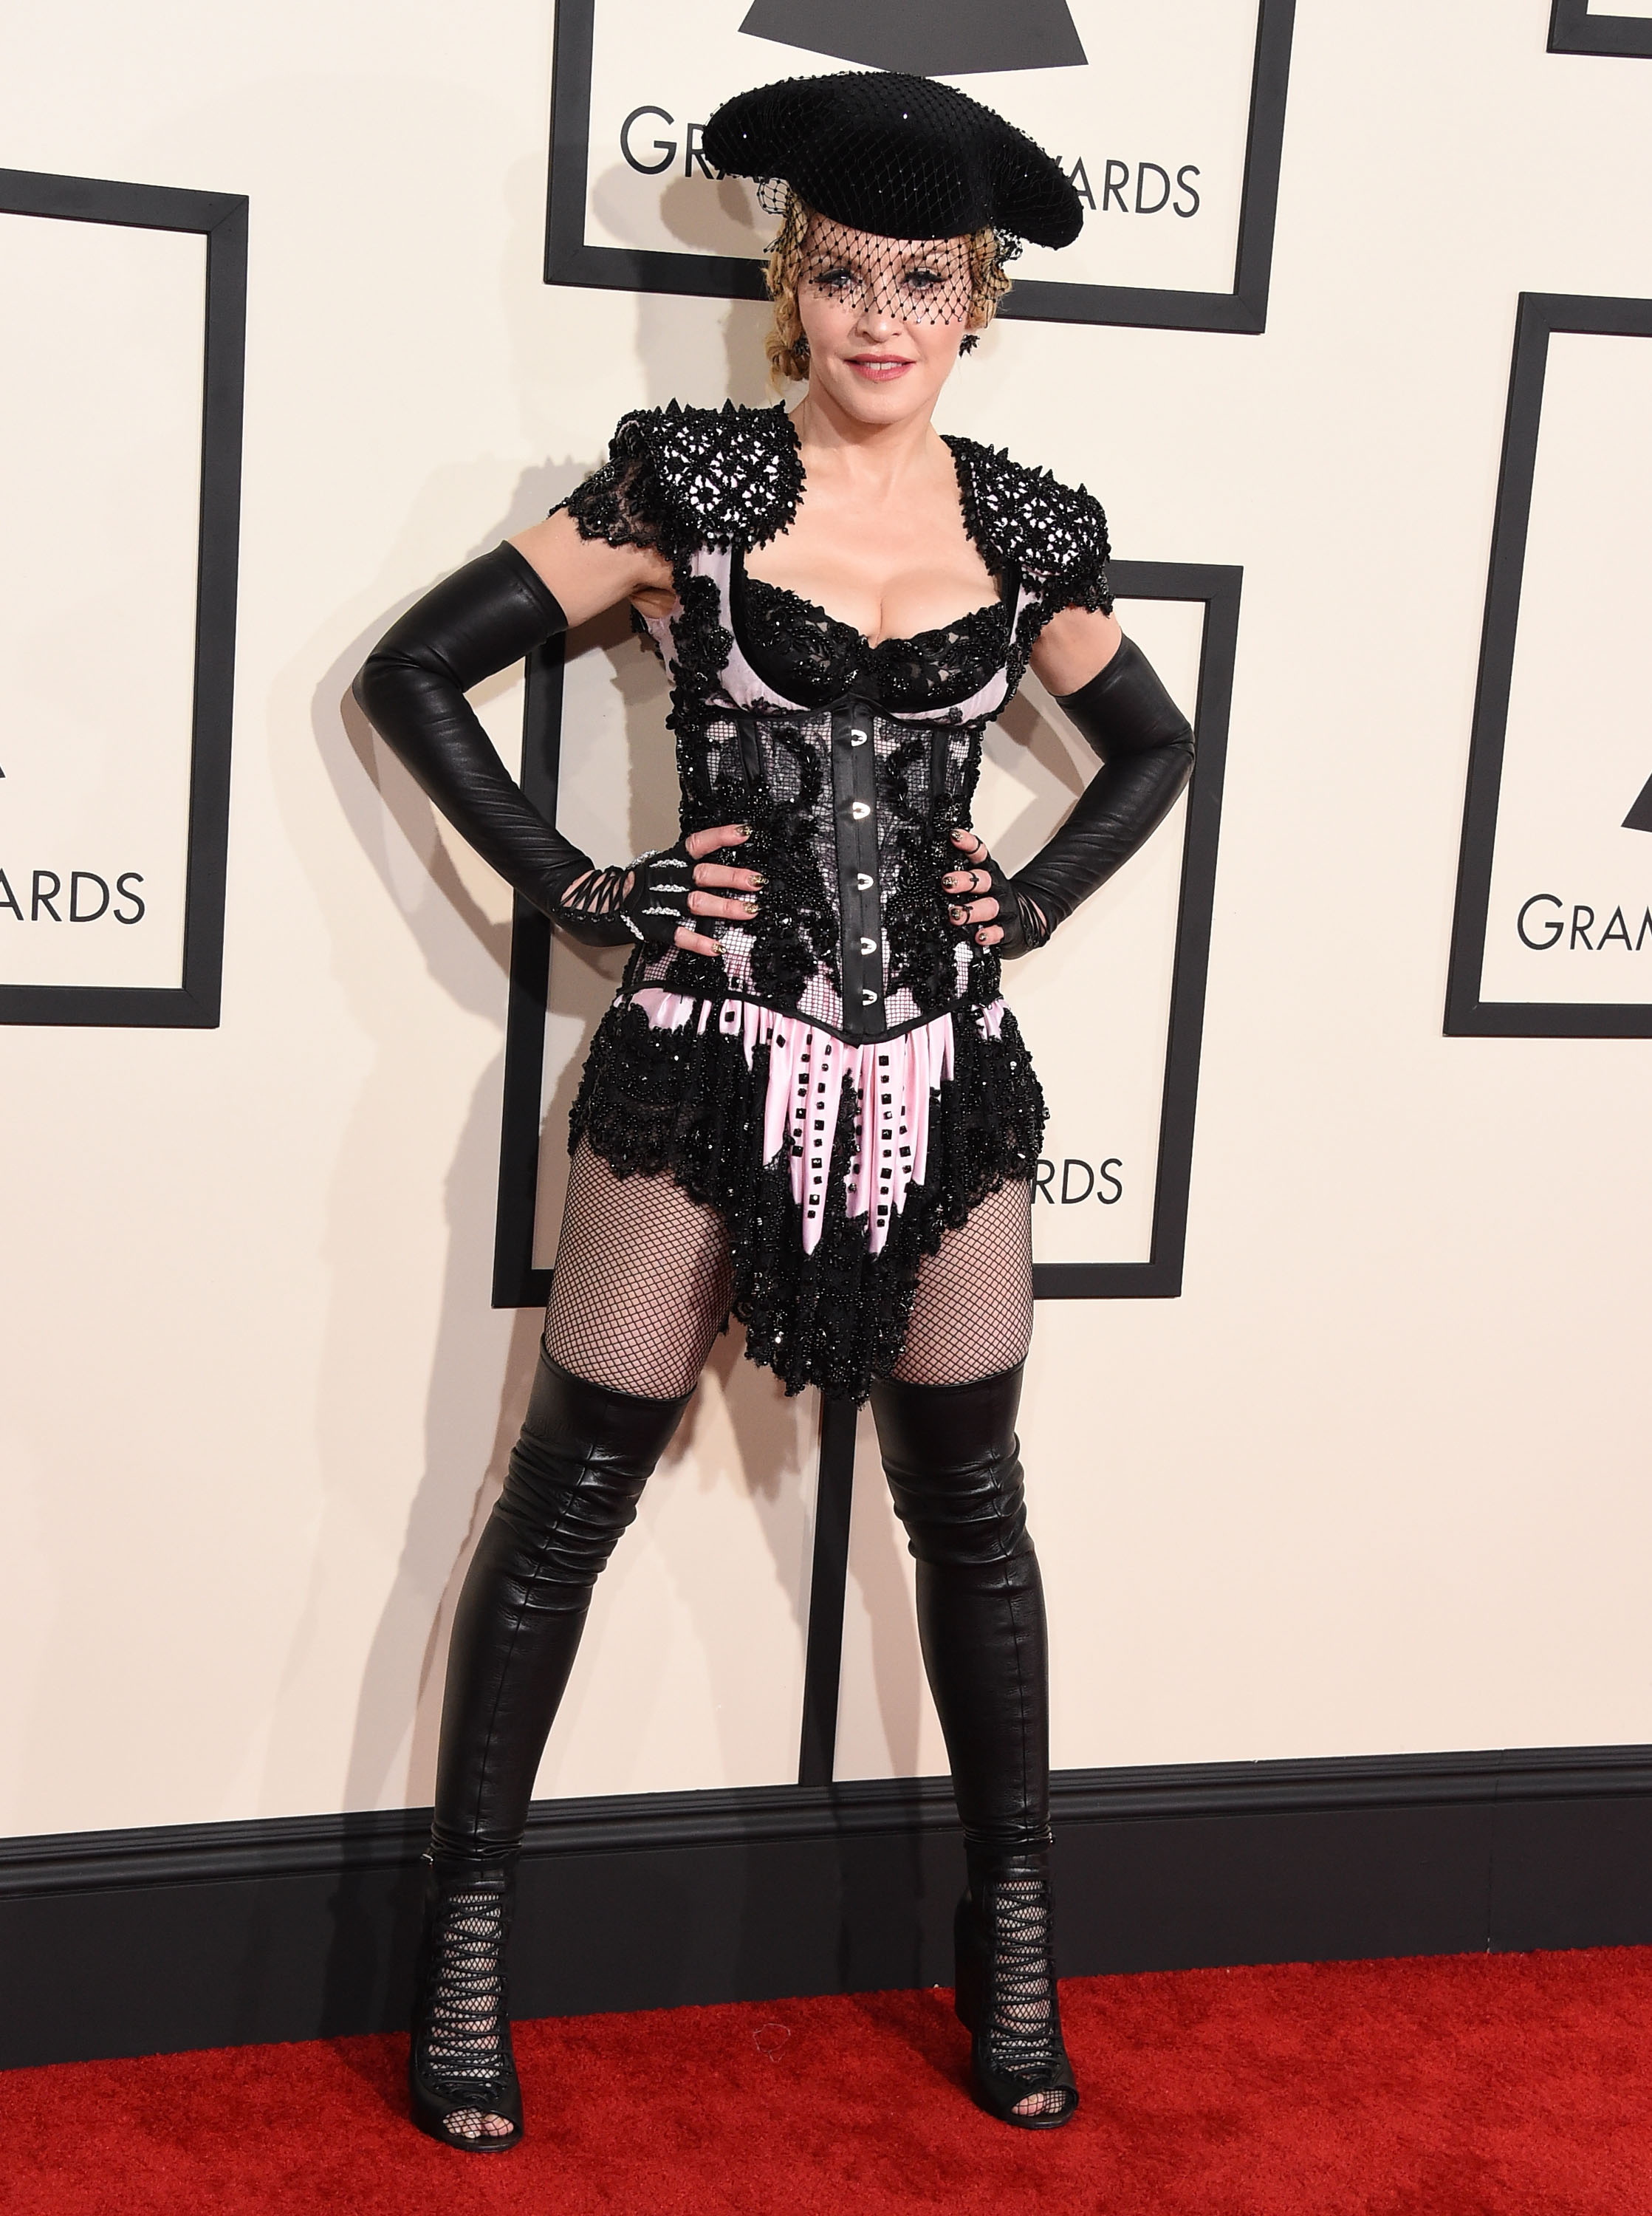 Madonna arrives at the The 57th Annual GRAMMY Awards in Los Angeles on Feb. 8, 2015.